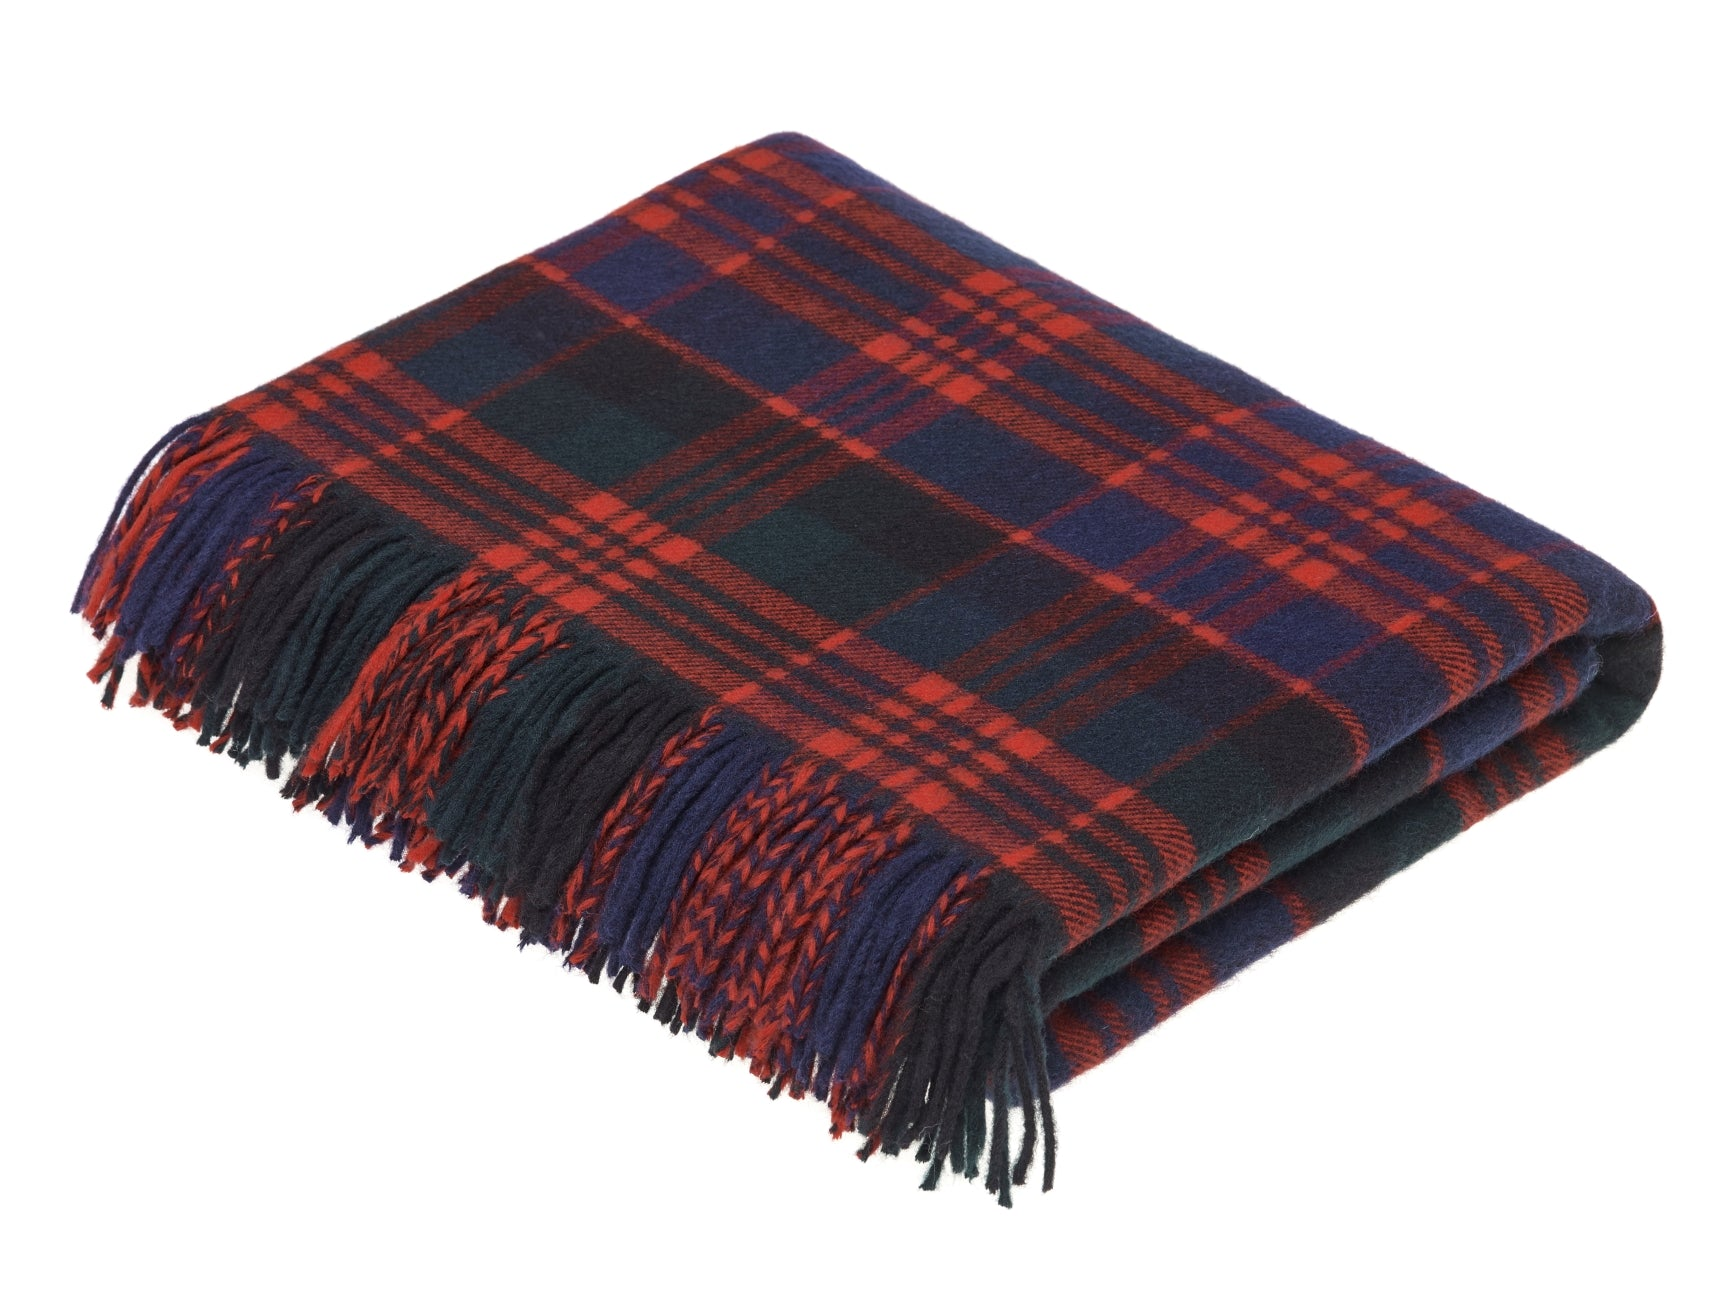 Tartan - Merino Lambswool - MacDonald - Throw Blanket ff73d404e